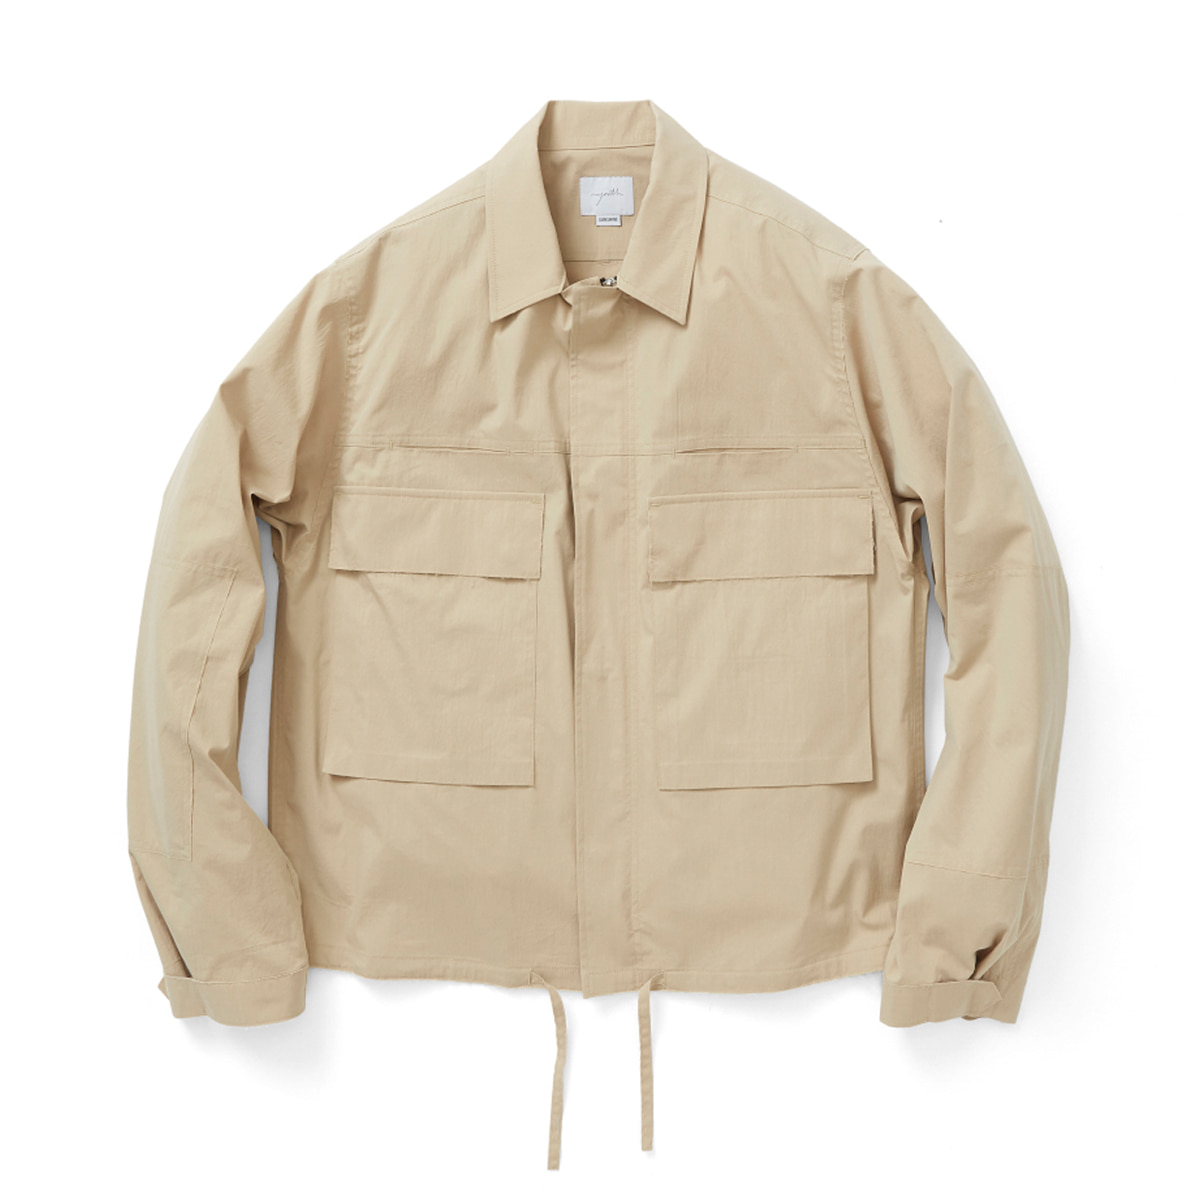 [YOUTH] CUT-OFF CROPPED JACKET 'BEIGE'